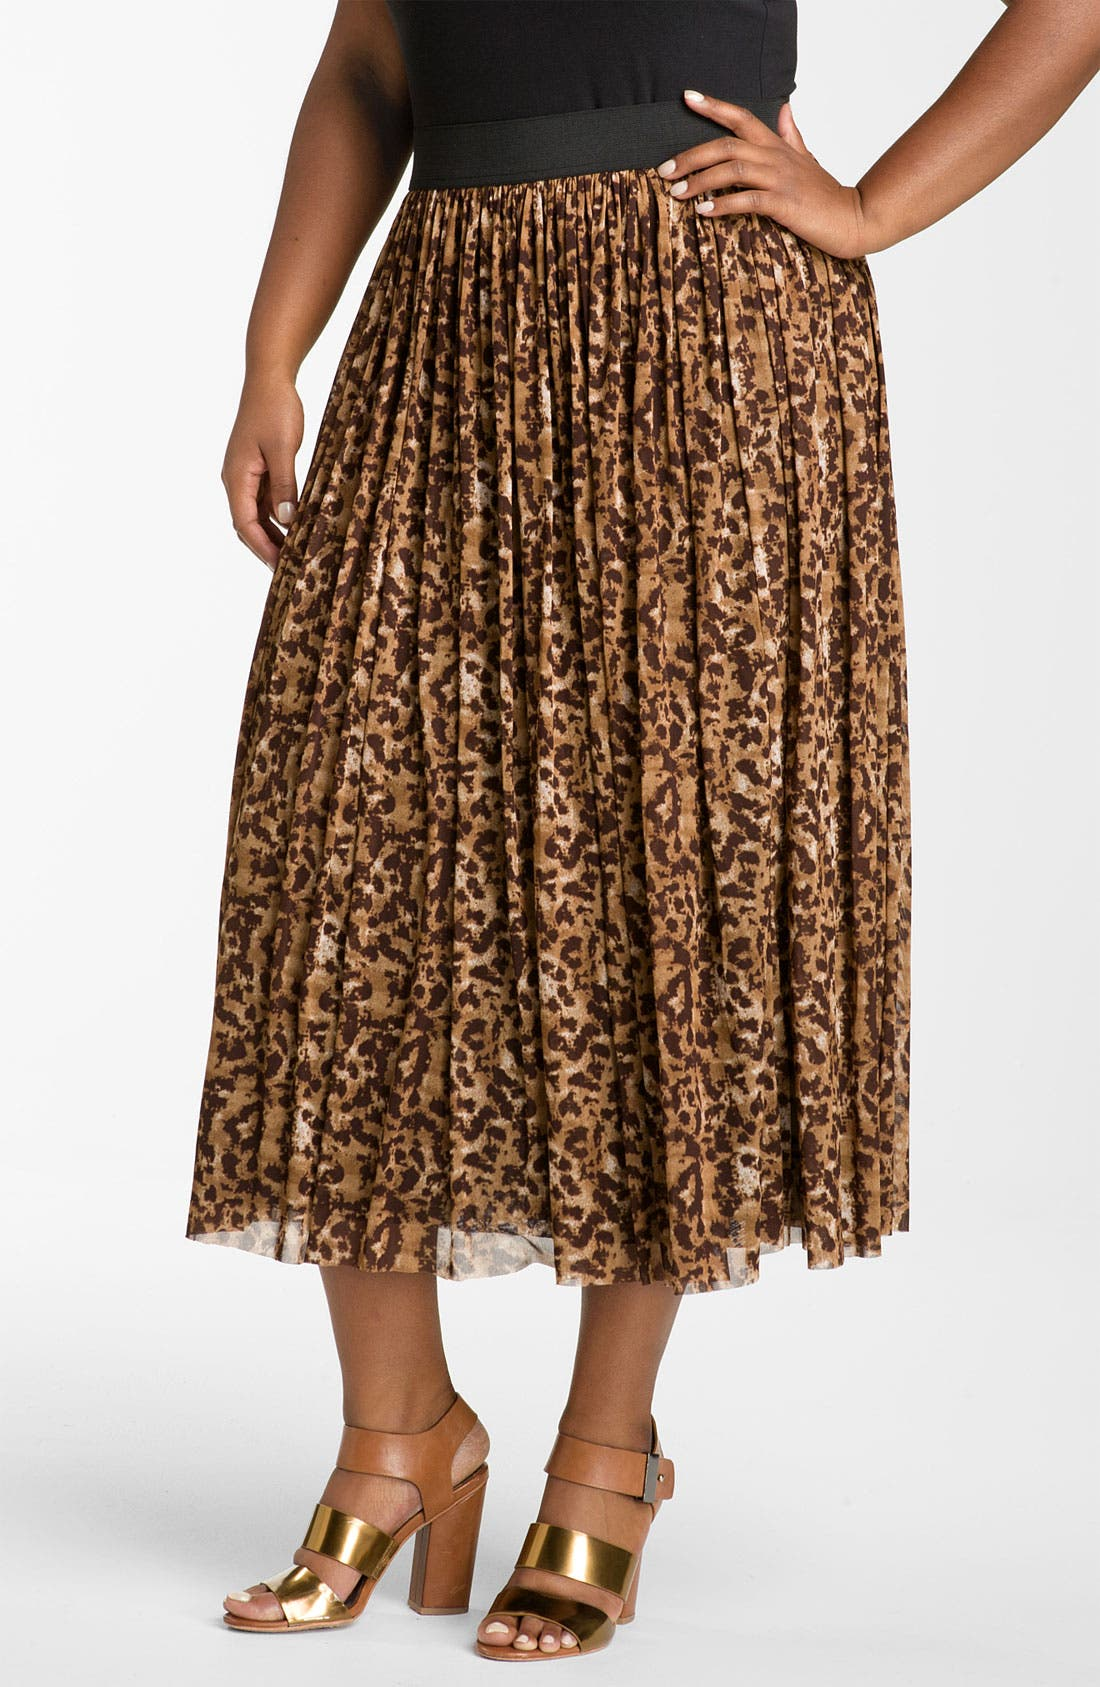 Alternate Image 1 Selected - Vince Camuto 'Textured Spots' Animal Print Skirt (Plus)